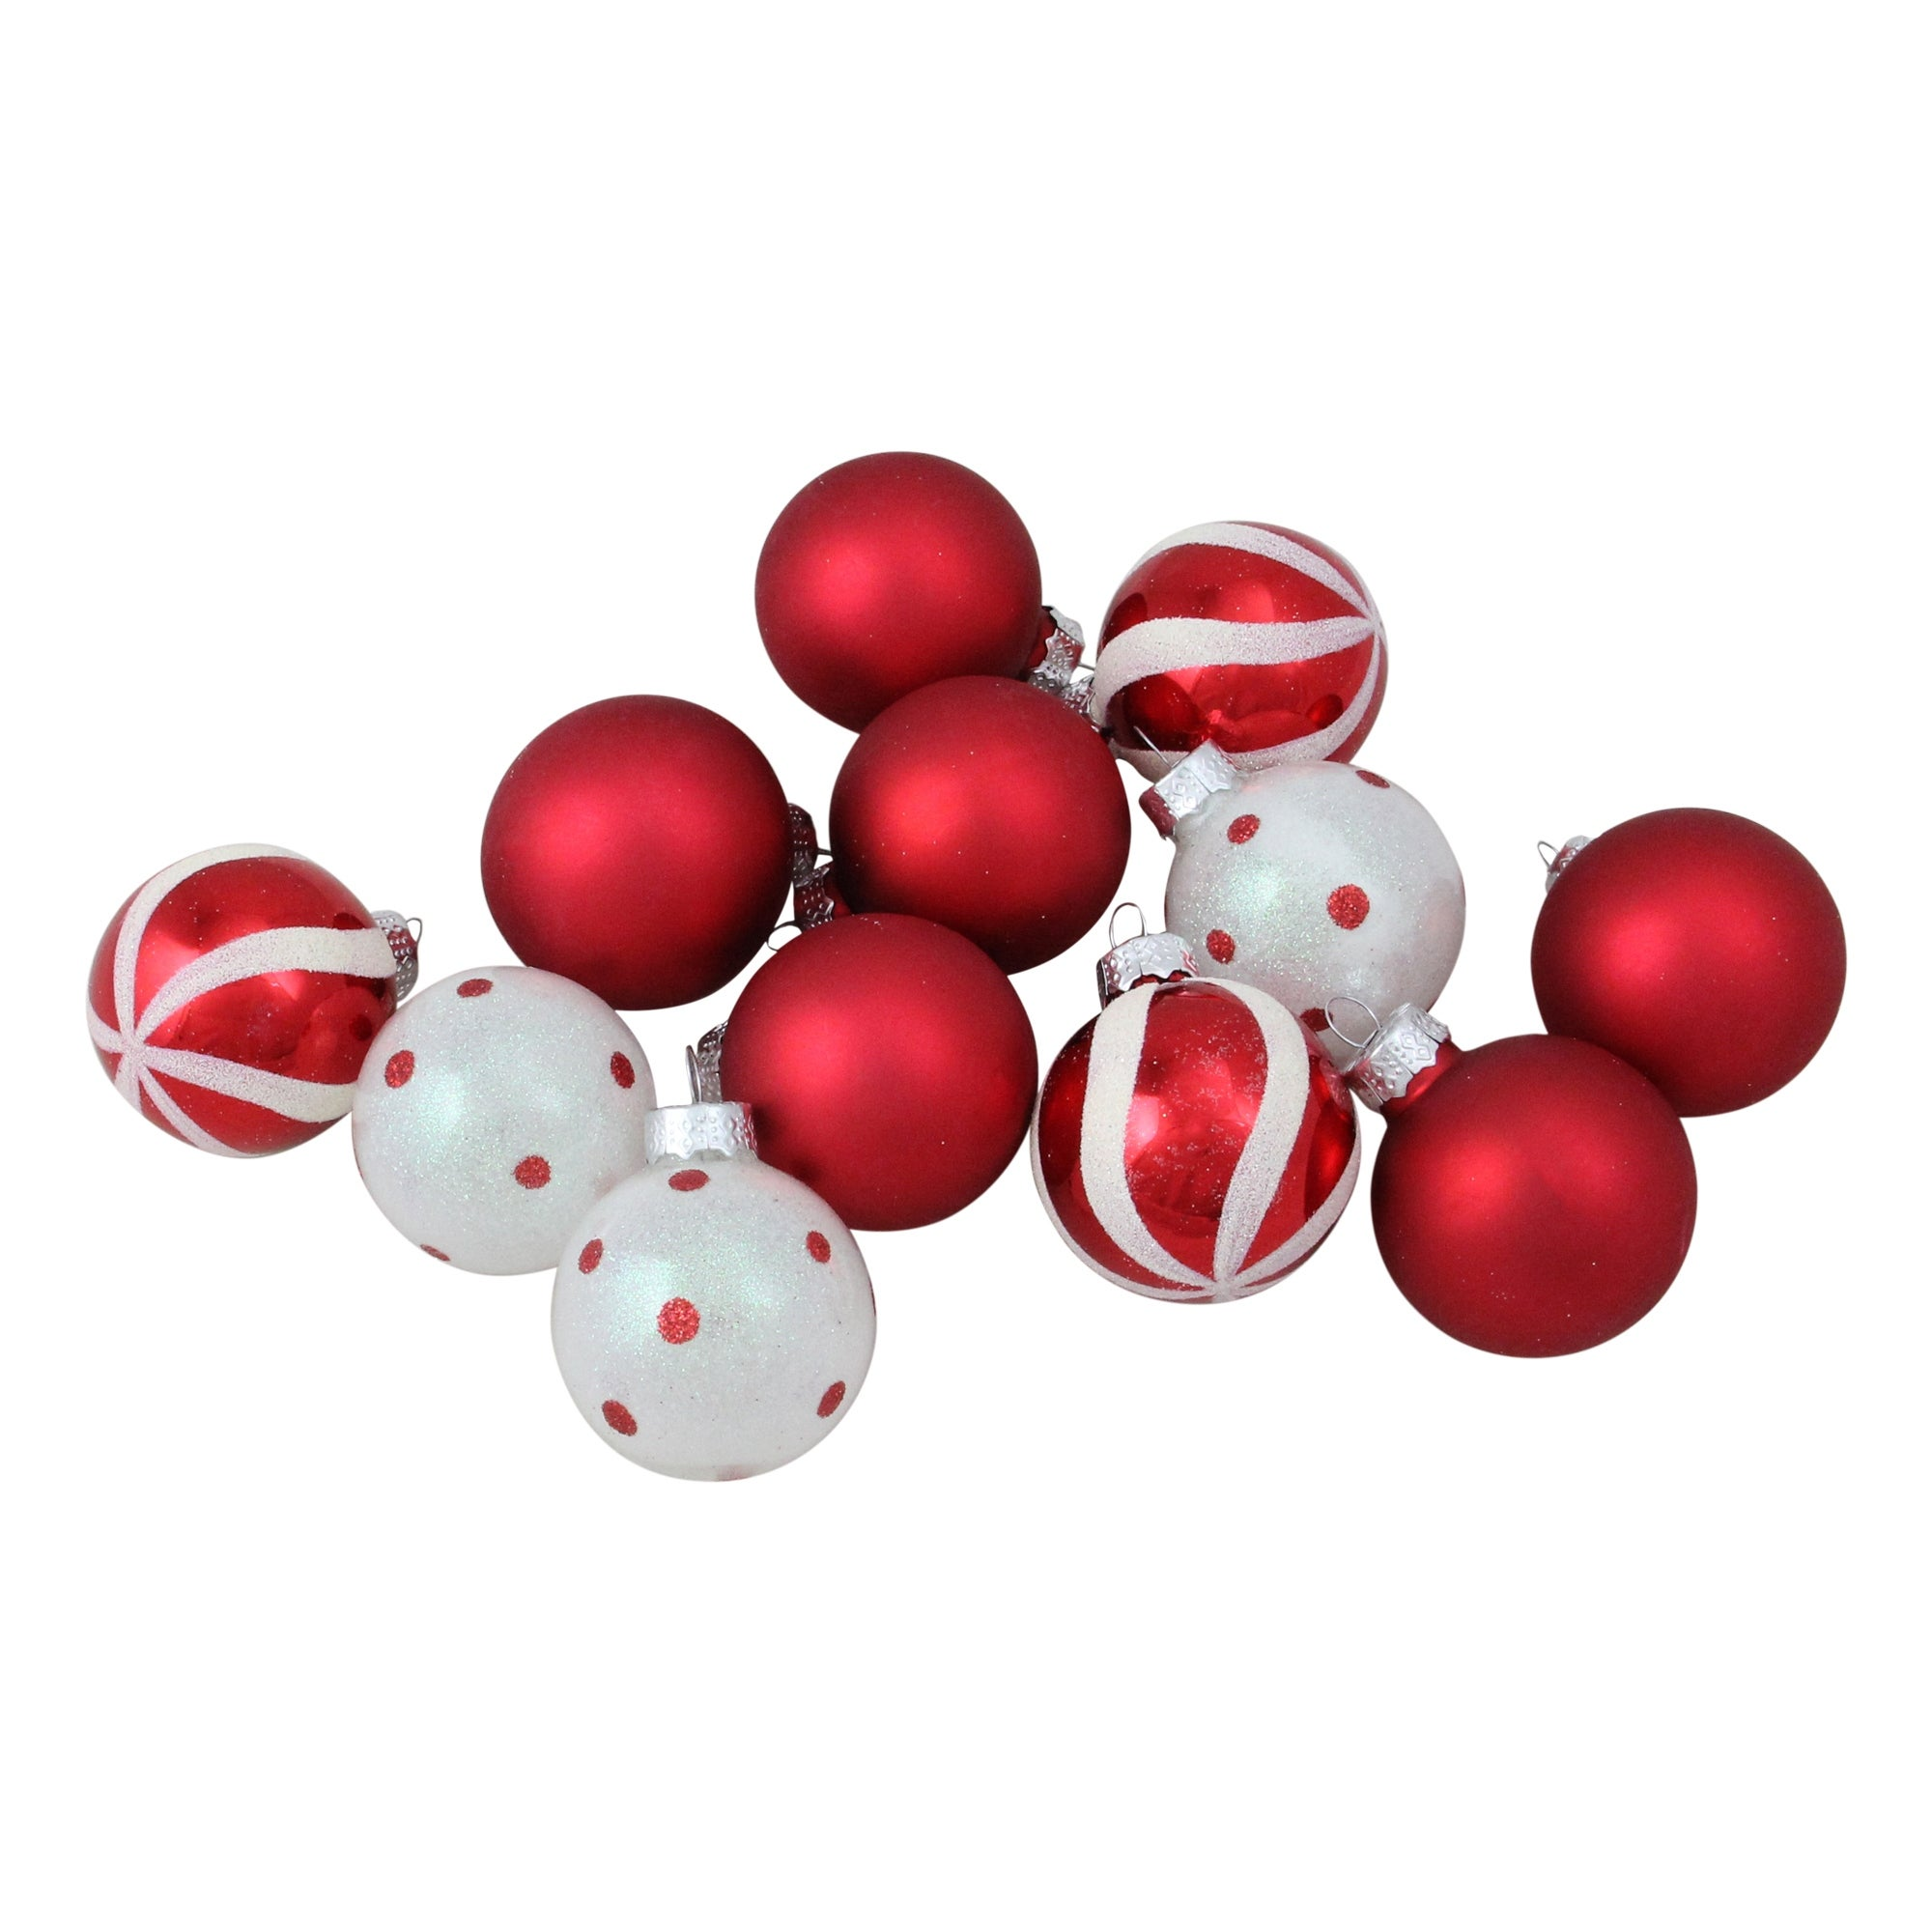 Christmas Ornament Set.12ct Red And White Swirl And Polka Dot Glass Ball Christmas Ornament Set 1 75 45mm